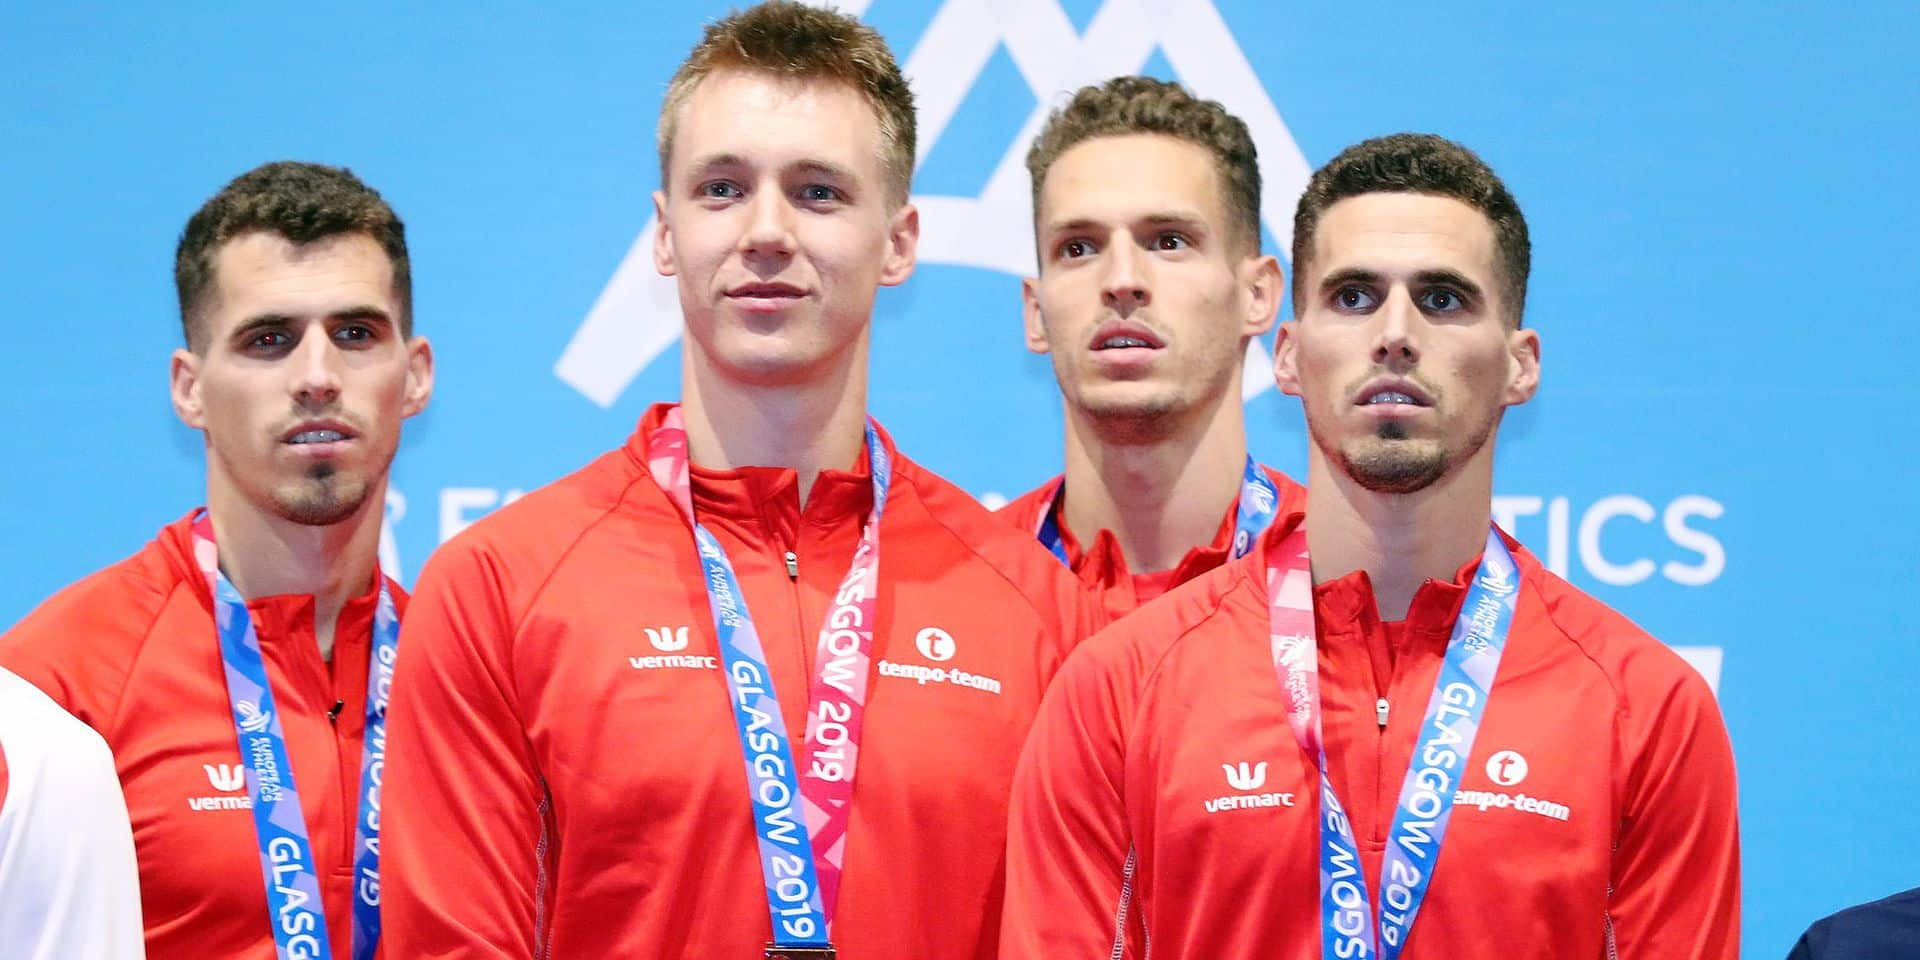 Belgian Jonathan Borlee, Belgian Julien Watrin, Belgian Dylan Borlee and Belgian Kevin Borlee celebrate on the podium after winning the men's 4x400m relay race on the third and last day of the European Athletics Indoor Championships, in Glasgow, Scotland, Sunday 03 March 2019. The championships take place from 1 to 3 March. BELGA PHOTO BENOIT DOPPAGNE